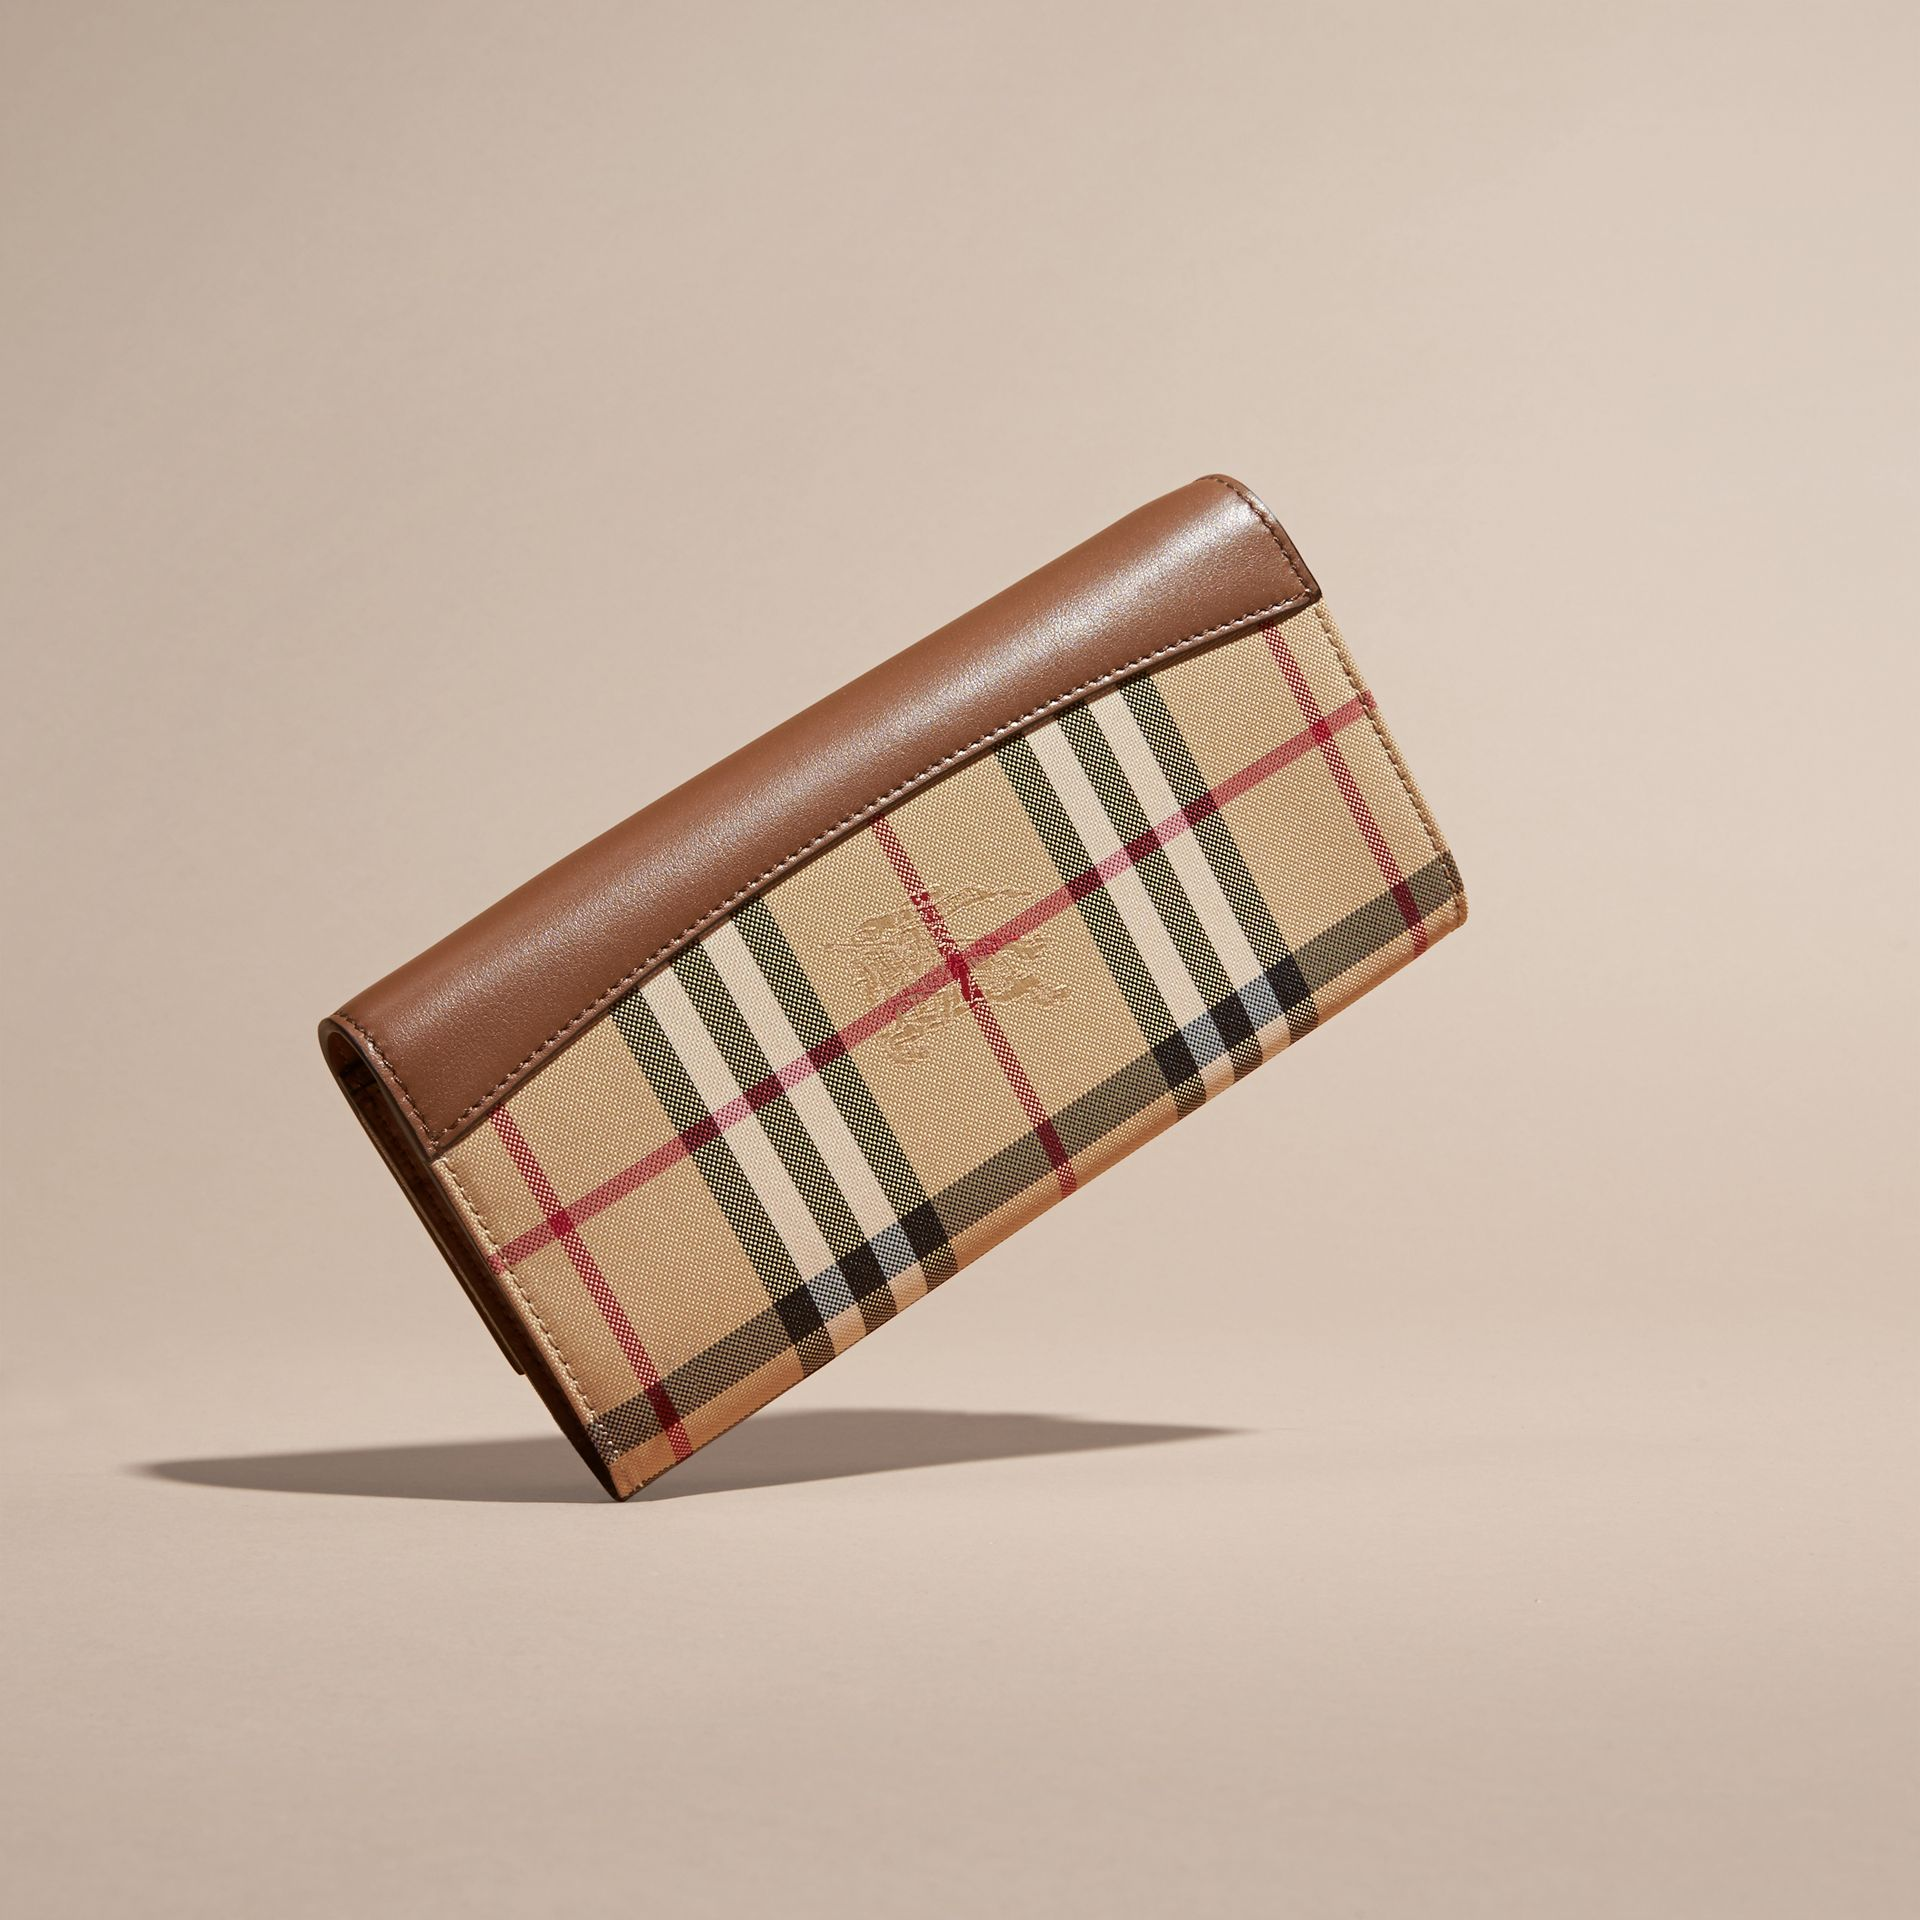 Horseferry Check and Leather Wallet with Chain in Tan - Women | Burberry - gallery image 4